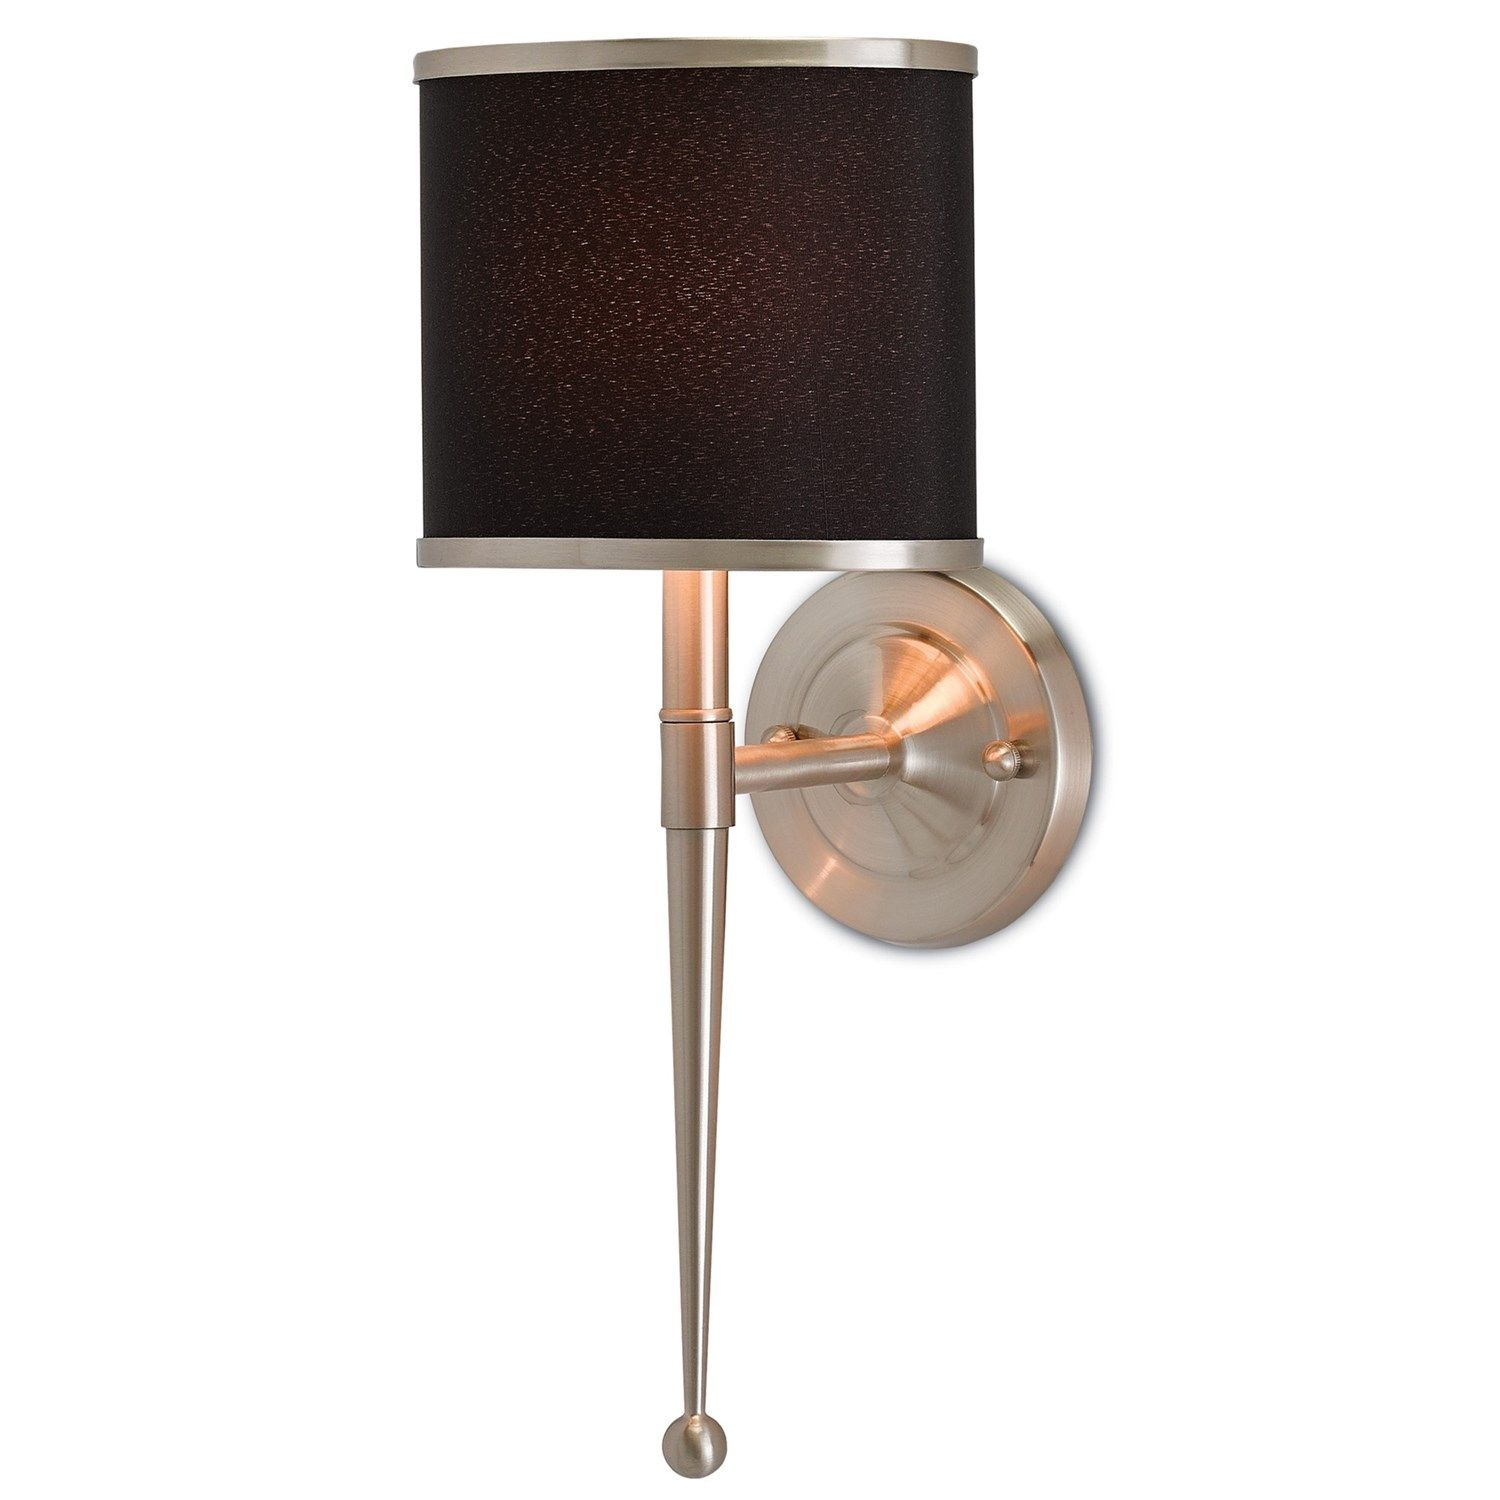 Bathroom Ideas Nickel Wall Sconce With Black Shade Light Sconces